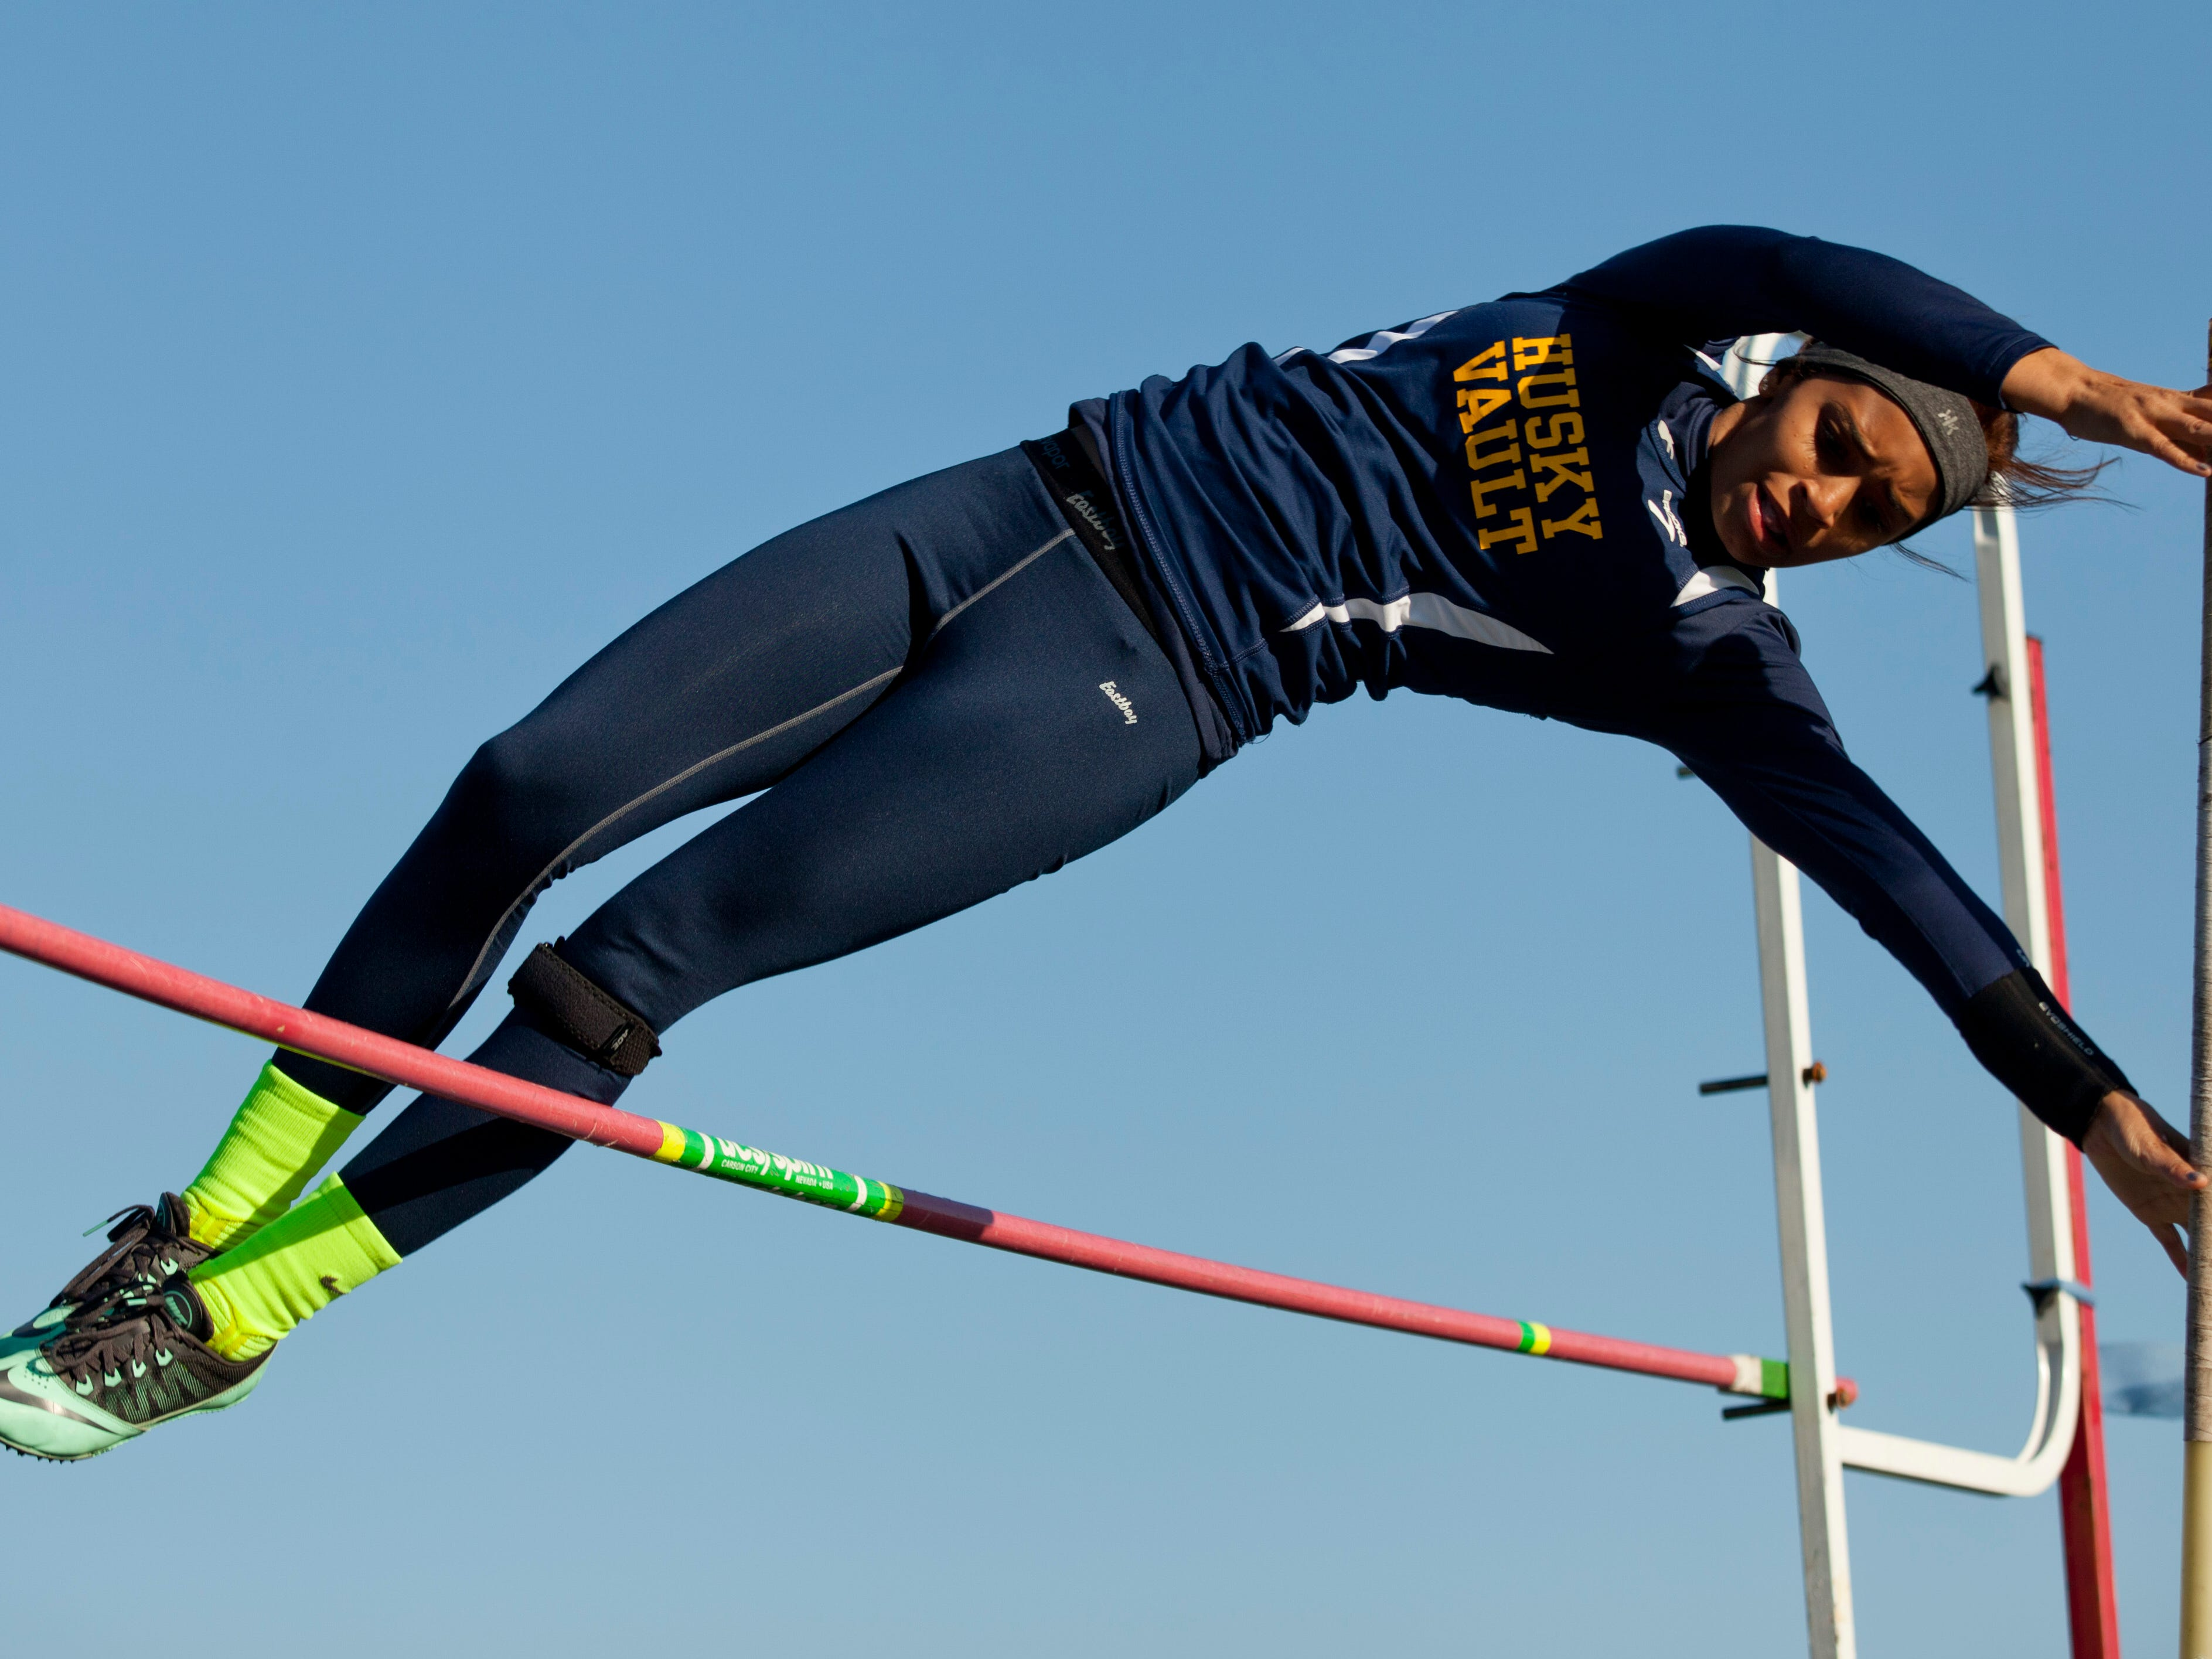 Port Huron Northern's Sophie Jackson competes in the pole vault during the Meet of Champions Friday, May 22, 2015 at Marysville High School.